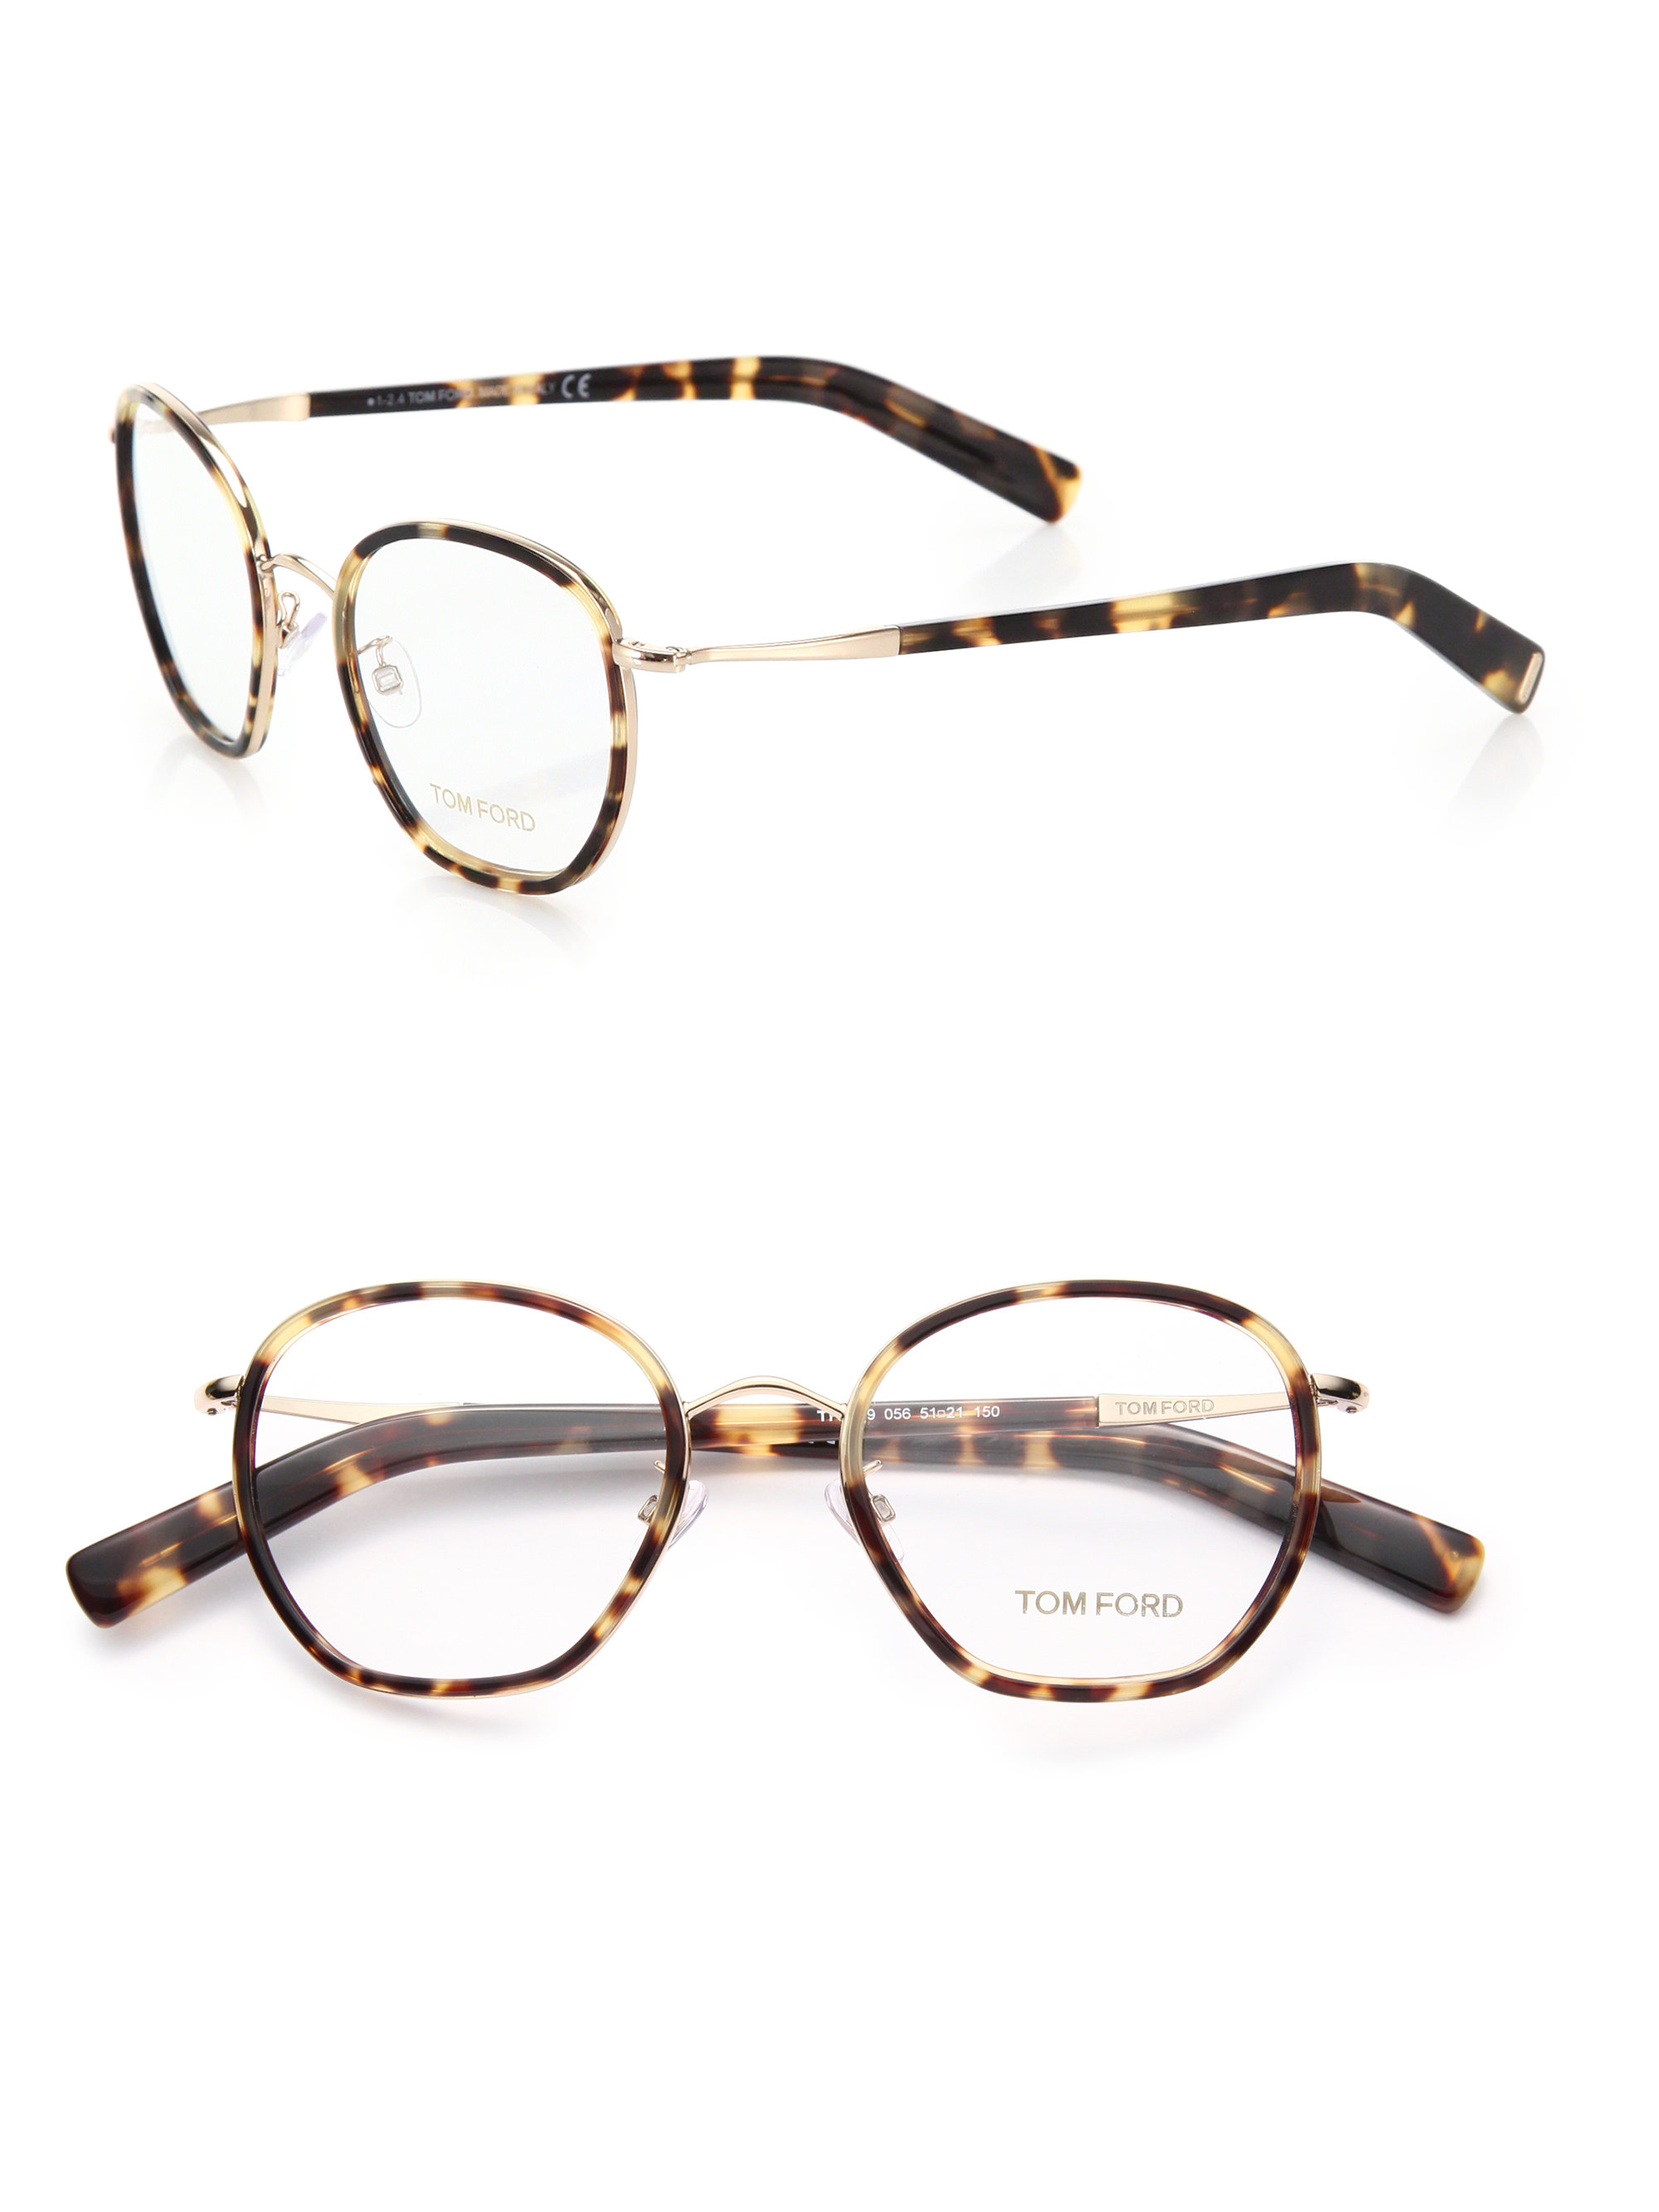 625750d8a3 Lyst - Tom Ford 51mm Round Acetate   Metal Optical Glasses in Brown